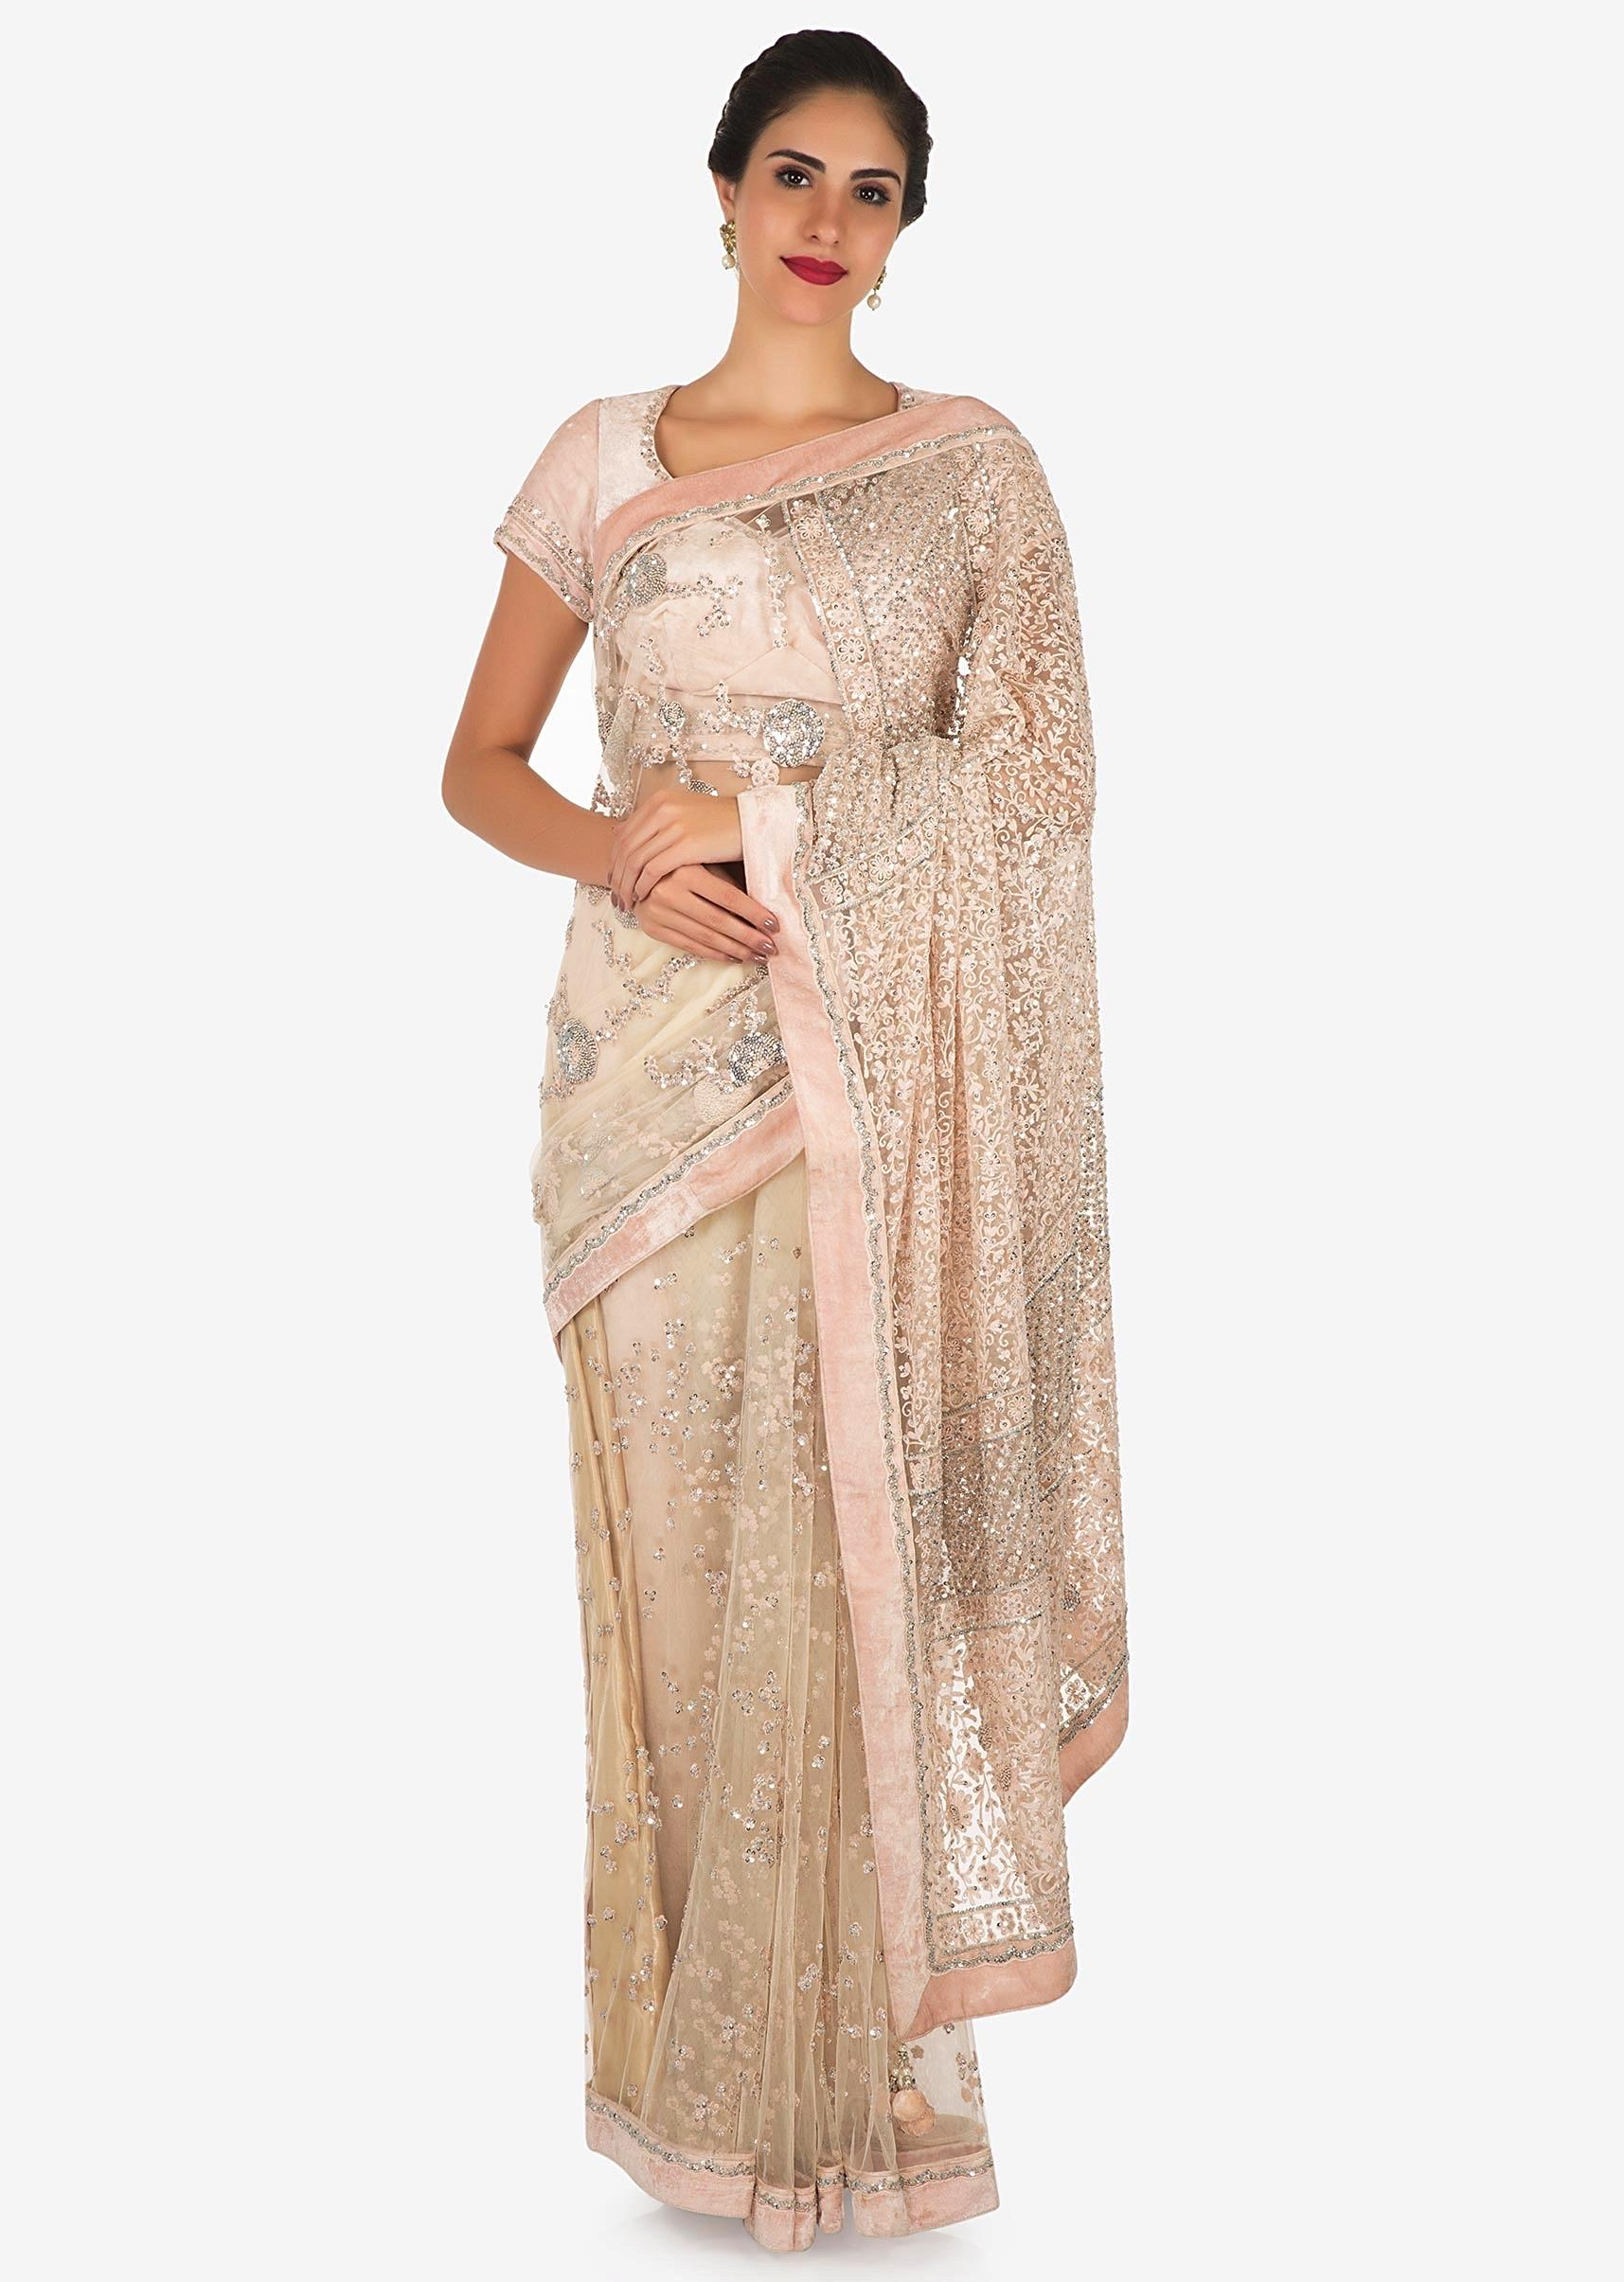 Pastel Hued Saree In Net With Velvet Blouse Adorn In Heavy Sequin And Thread Embroidered Work Only On Kalki